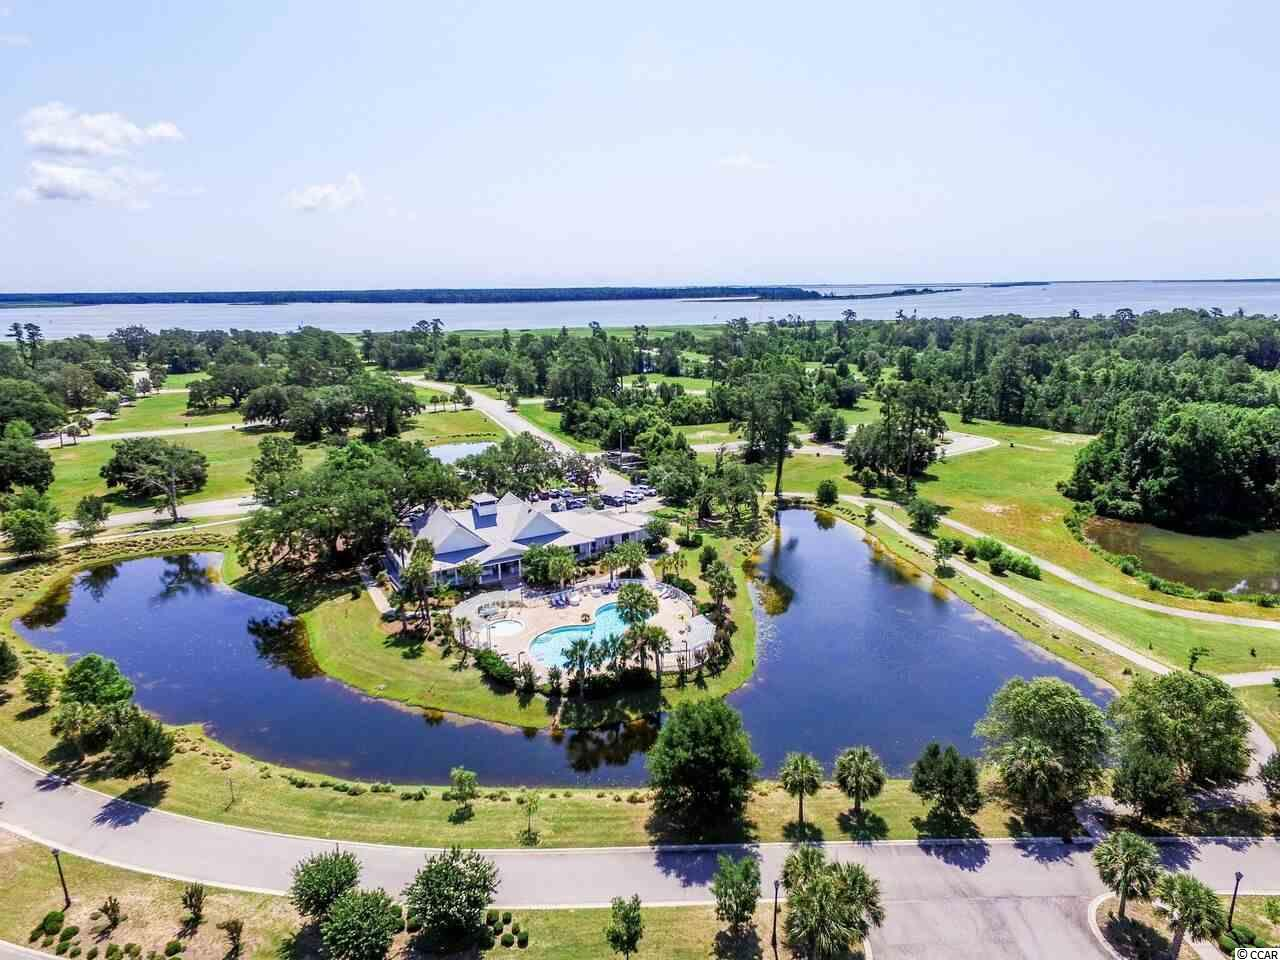 Price Reduced!!!  South Island Plantation...A gated community located along Winyah Bay and the Intracoastal Waterway, near Historic Georgetown, SC.  Community amenities include a pool, kiddie pool and hot tub. There is also a 5000 sq ft club house with an equipped fitness center, a bar and a full kitchen.  Walking trails wind throughout the community with gazebos for periodic resting. A fishing/crabbin' gazebo are now complete.  A secured RV/ Boat storage area is available for property owners.  Huge oaks and beautiful ponds make this one of the premier communities in the area.  Build your dream home today....